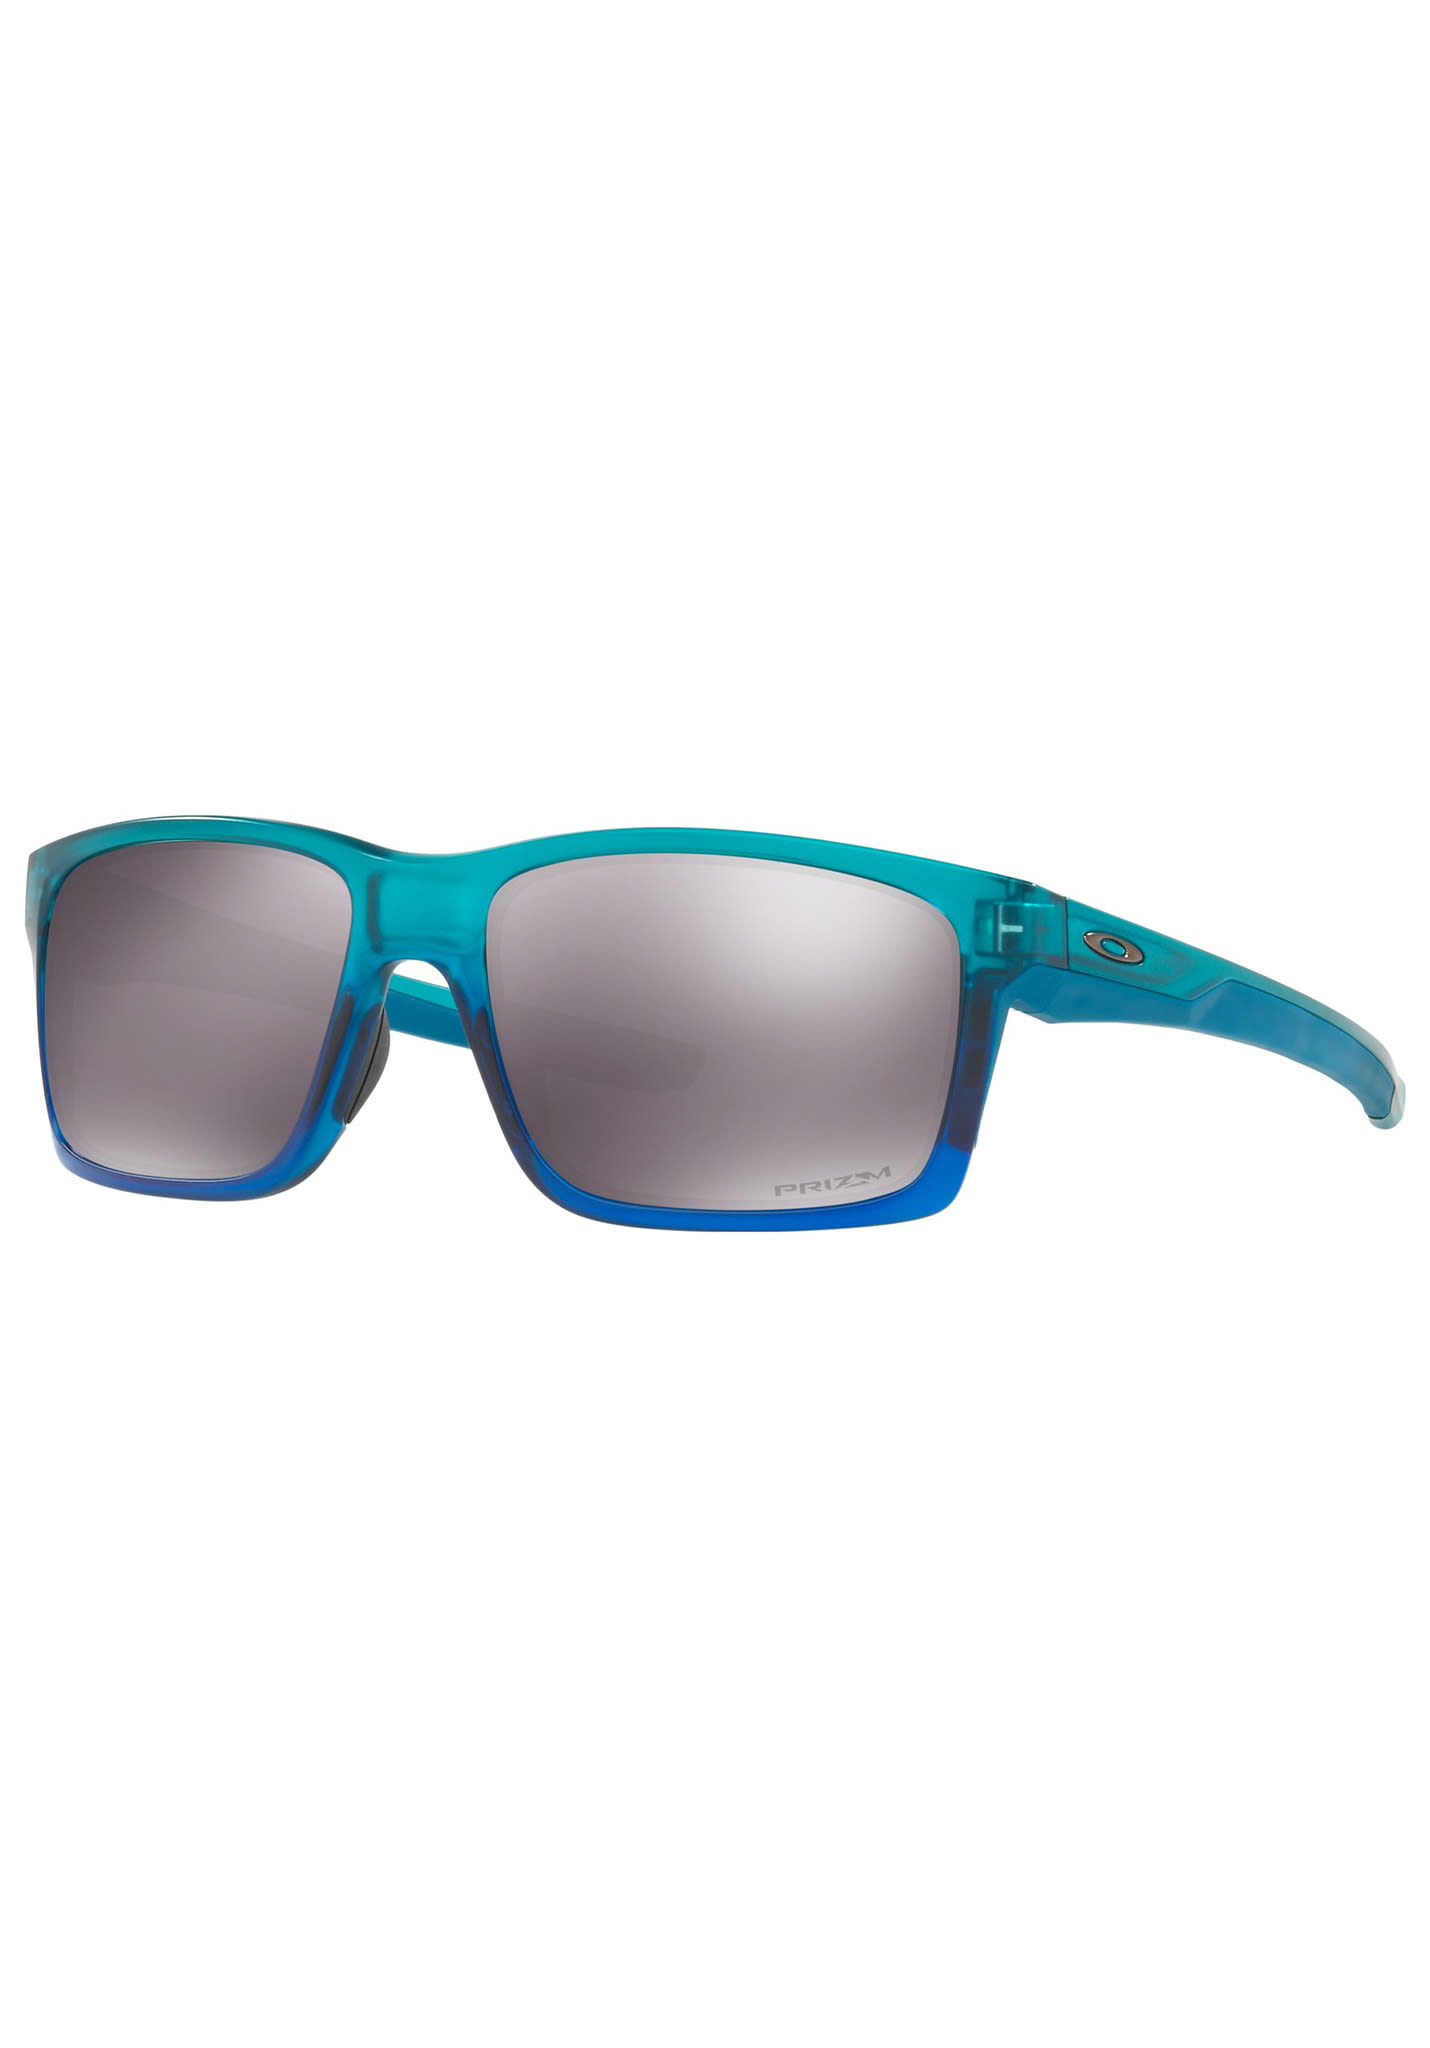 7b04e79fc3 OAKLEY Mainlink The Mist - Sunglasses - Blue - Planet Sports